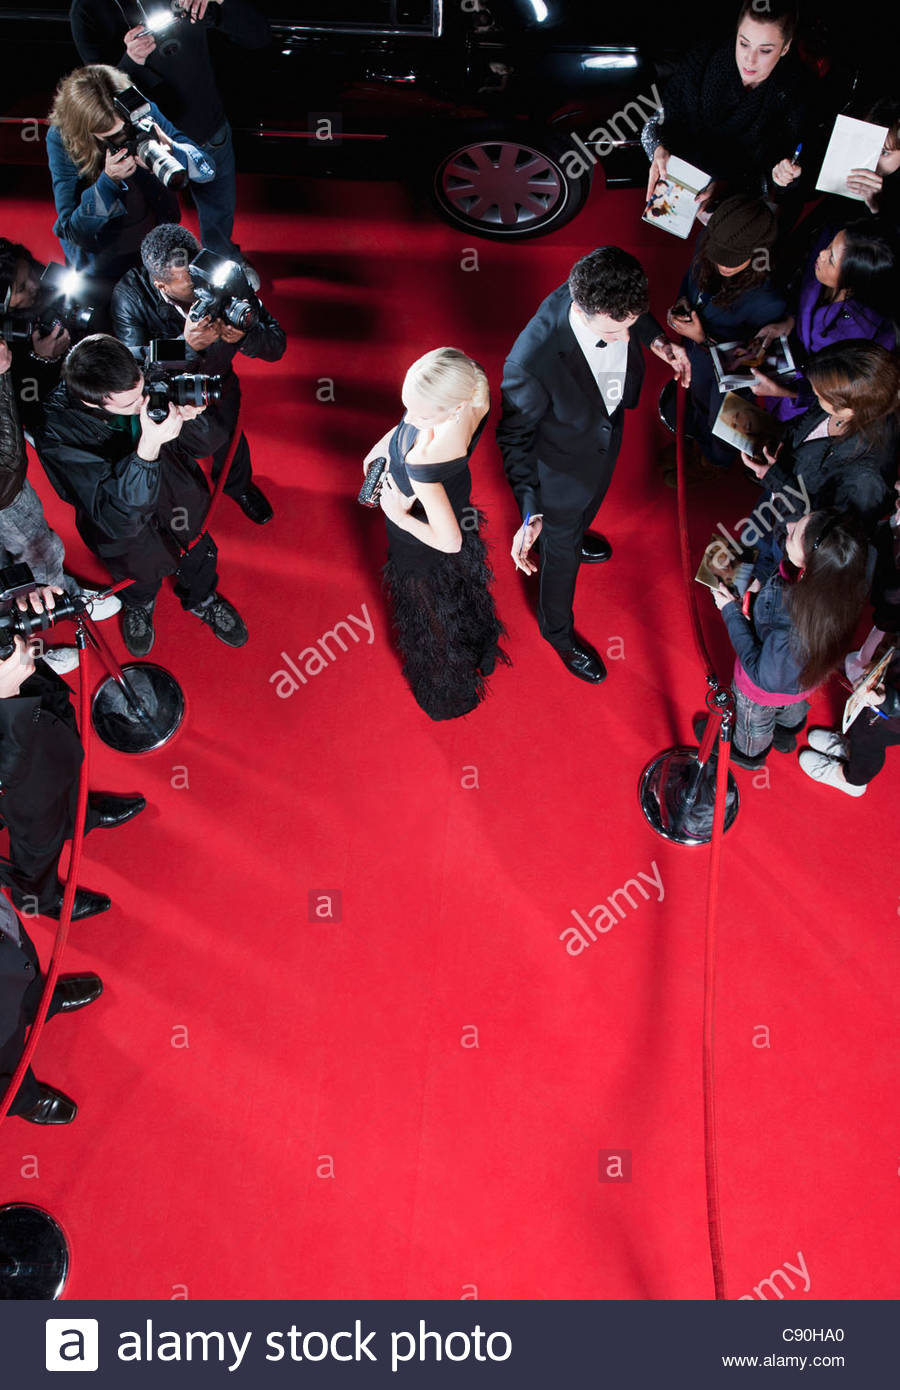 Celebrities working on red carpet - Stock Image